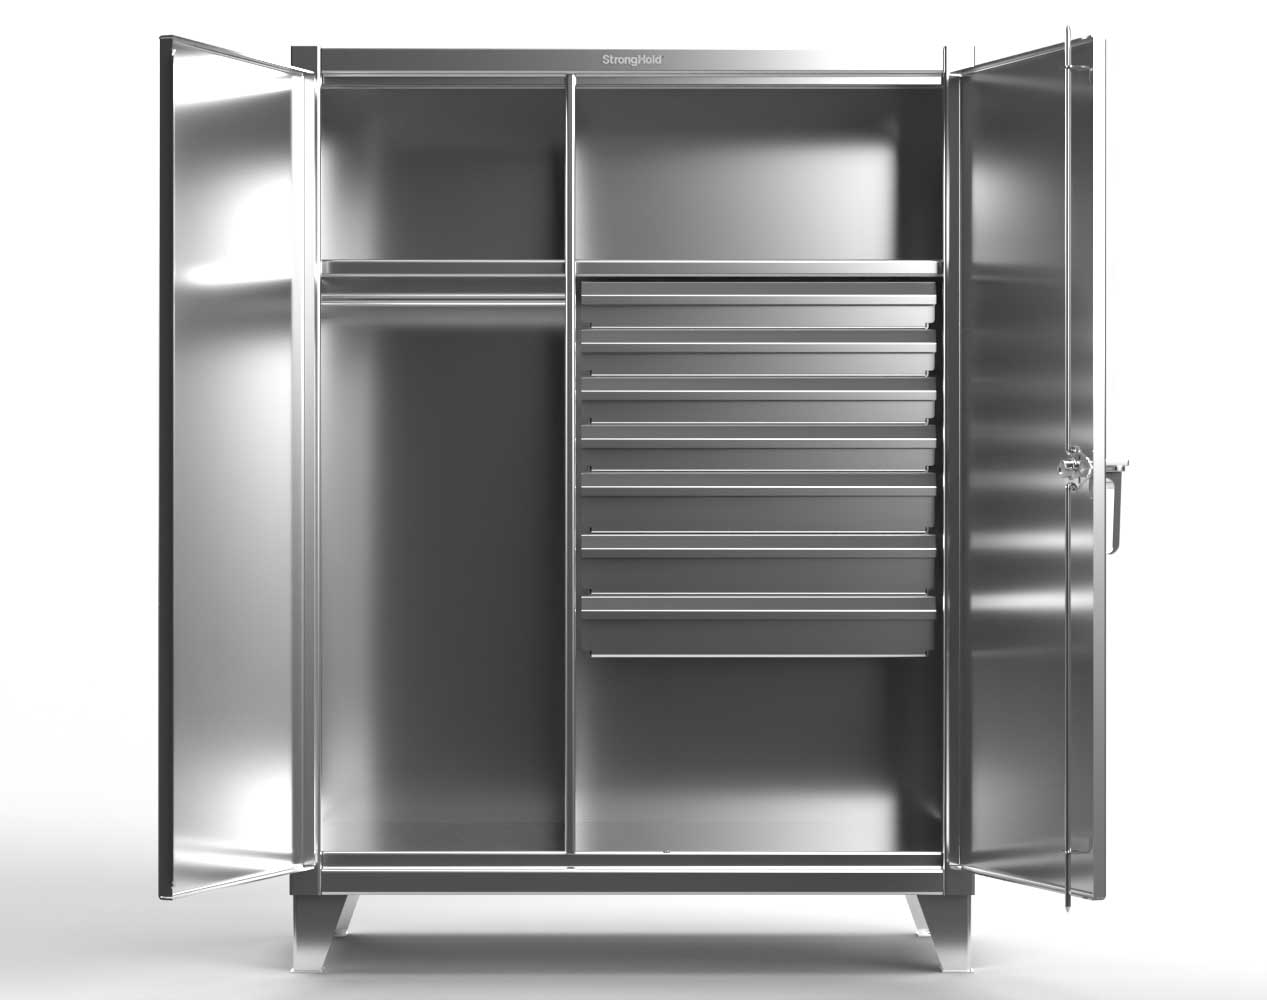 Extra Heavy Duty 12 GA Stainless Steel Wardrobe Cabinet with 7 Drawers, 2 Shelves – 48 In. W x 24 In. D x 66 In. H